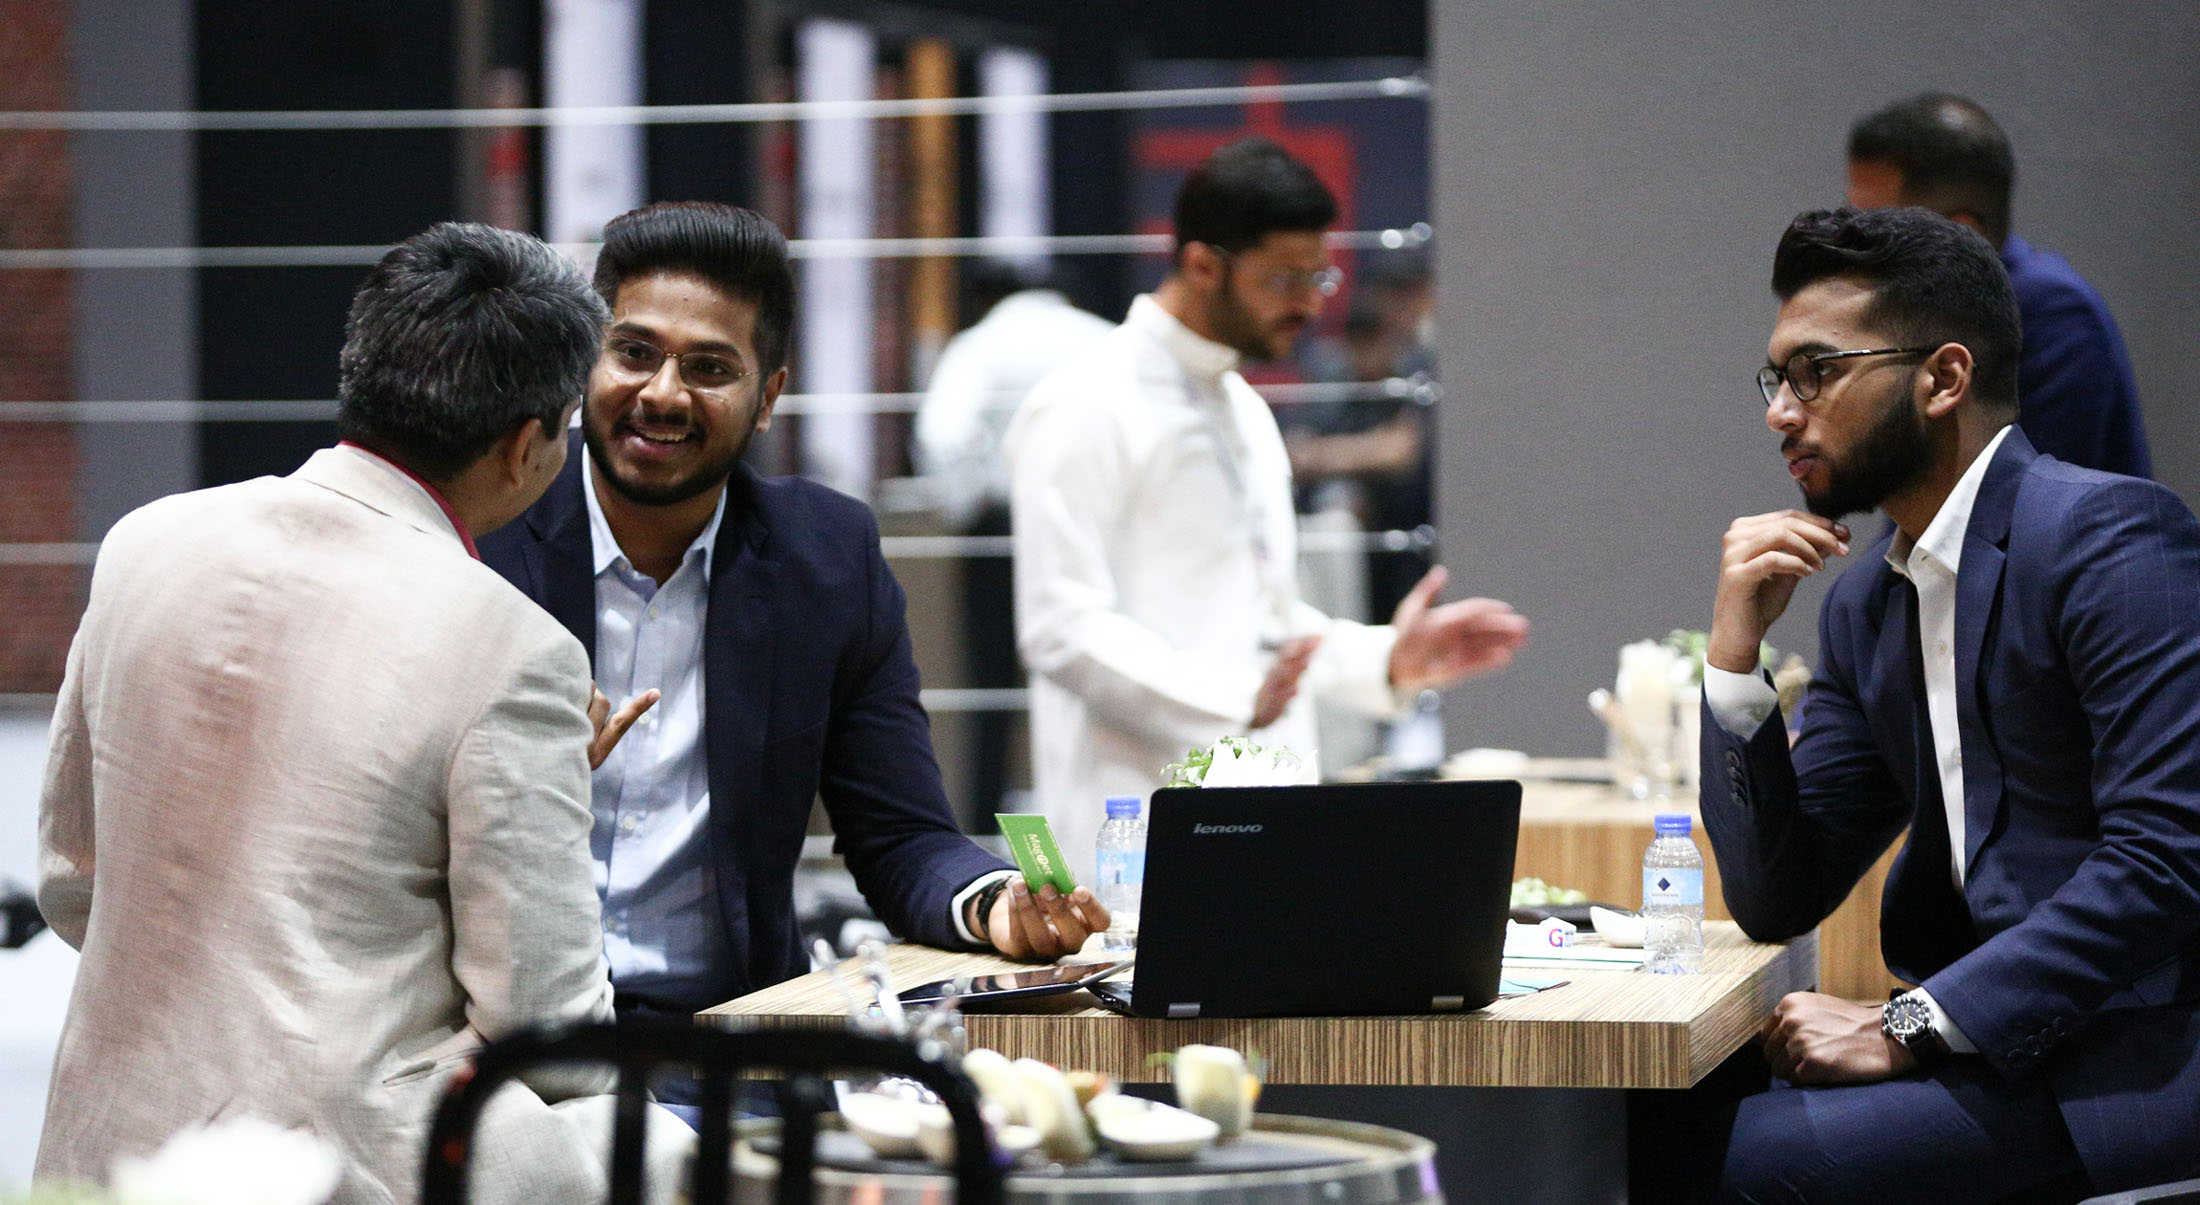 Lebanese Tech Startups Look to Dubai for Global Growth